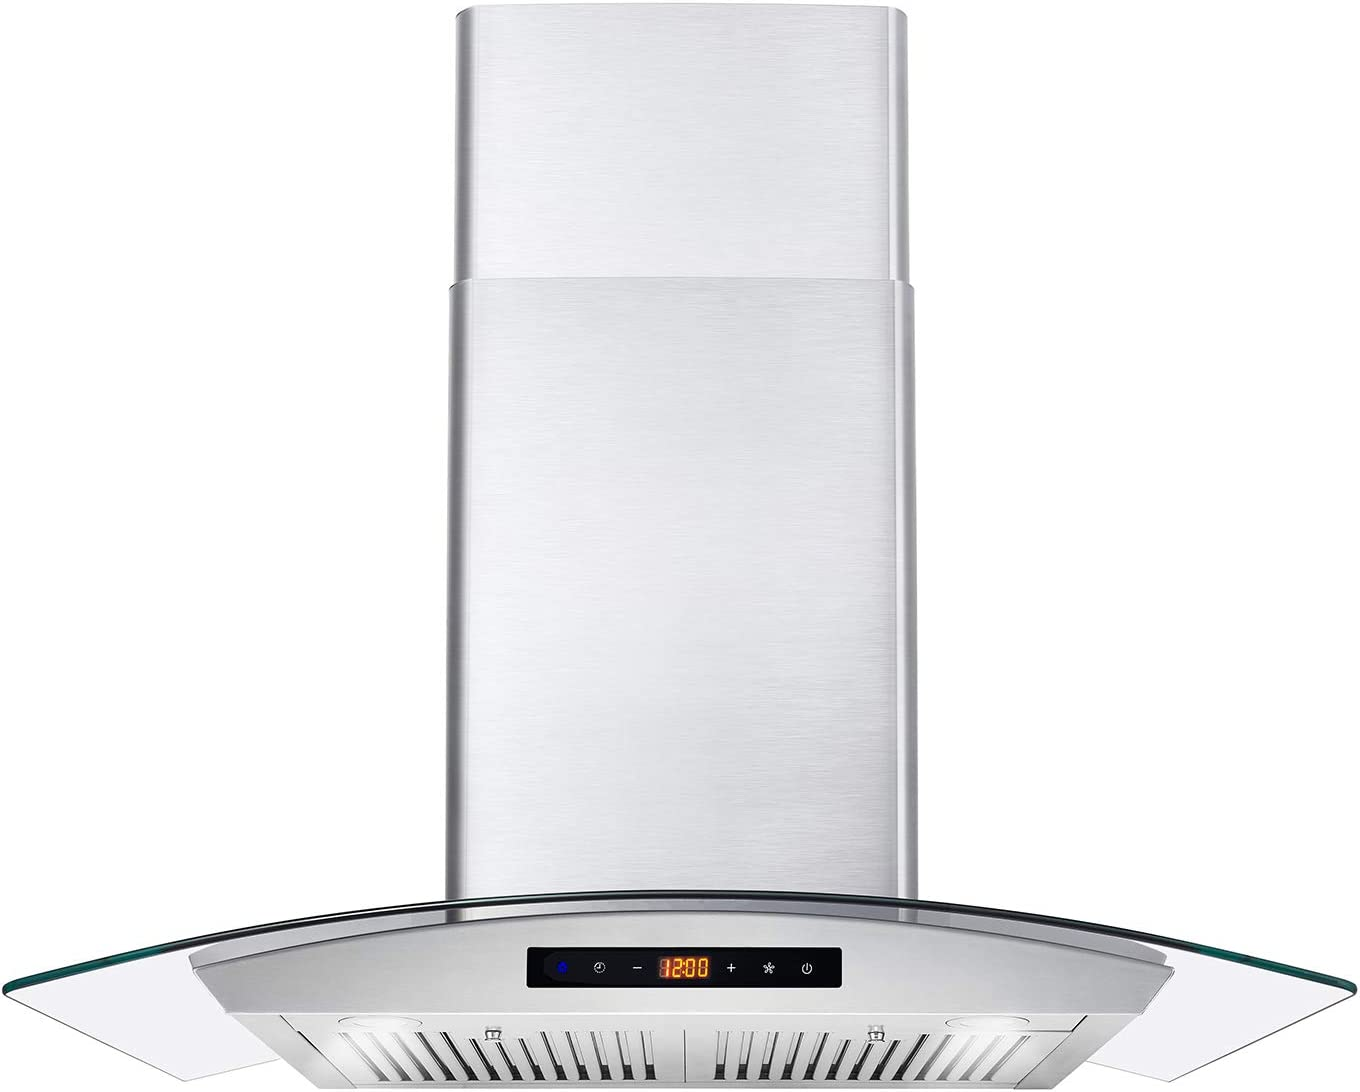 Cosmo COS-668AS750 30 in. Wall Mount Range Hood 380 CFM, Ductless Convertible Duct (additional filters needed, not included), Glass Chimney Over Stove Vent with Light, 3 Speed Exhaust, Fan Timer & Permanent Filter, Stainless Steel